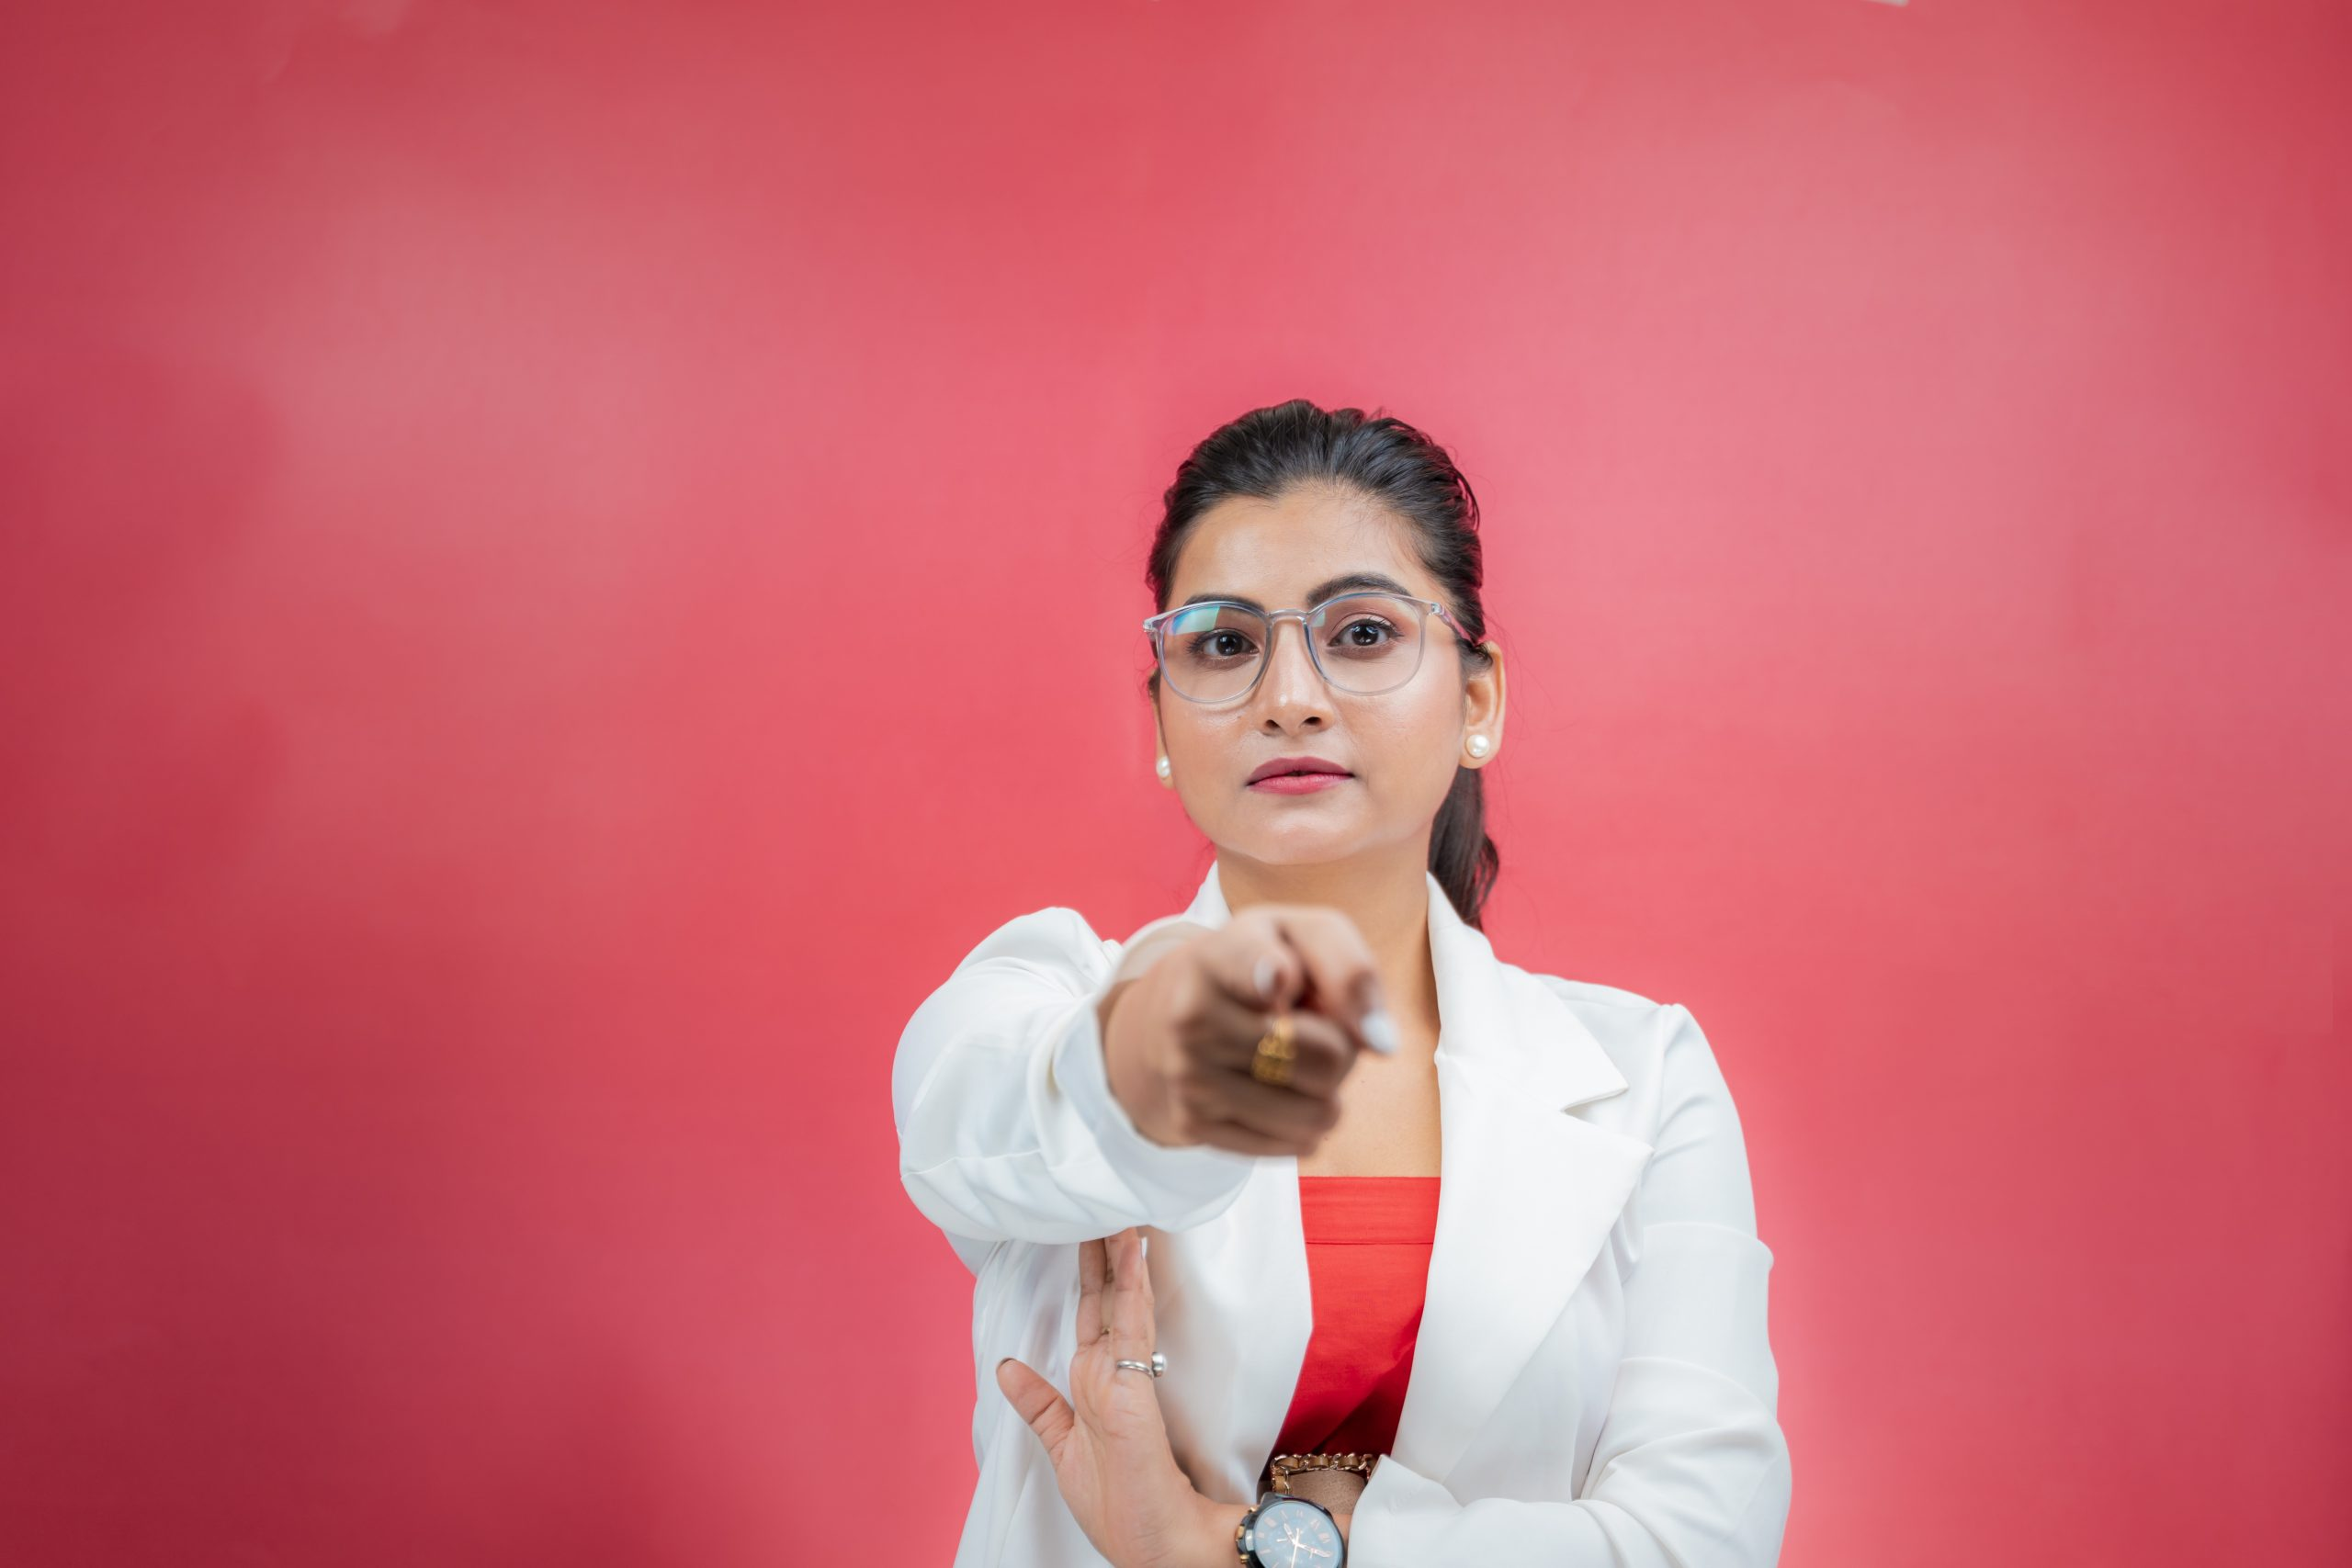 Woman pointing finger towards the camera